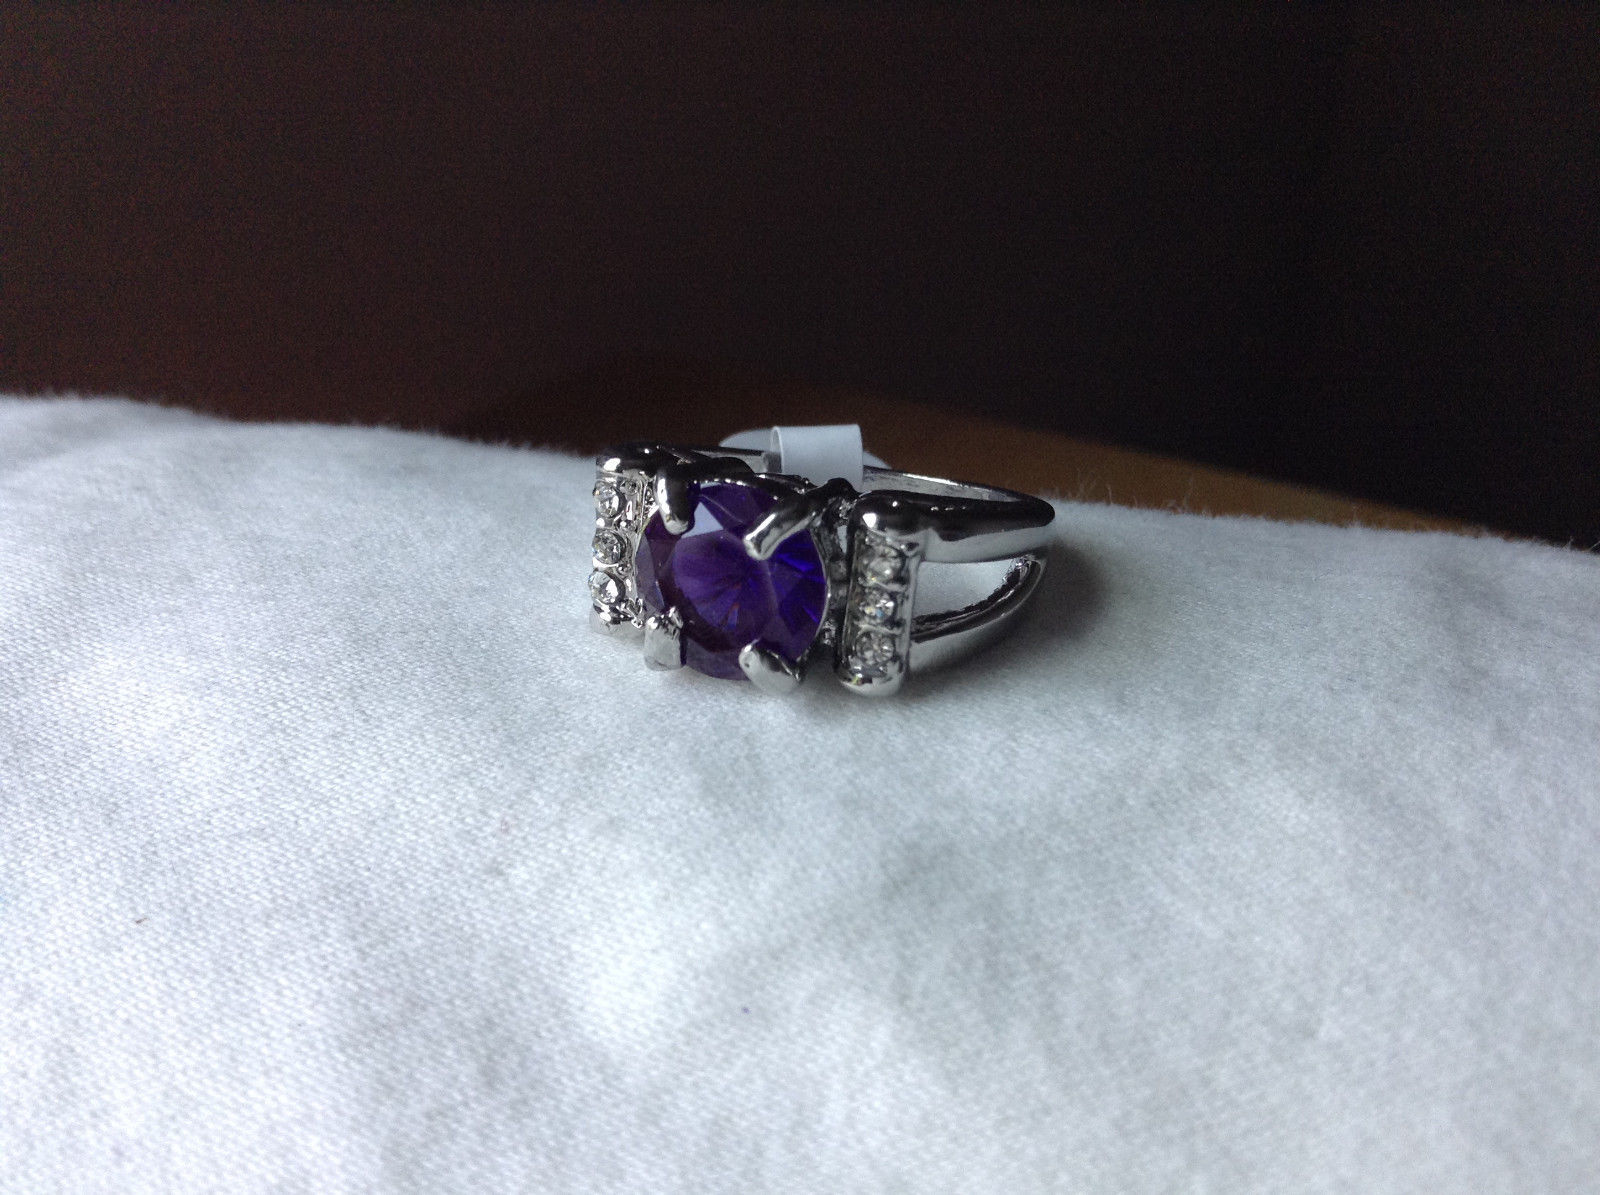 Purple CZ with White CZ Accents Stainless Steel Ring Size 8.5